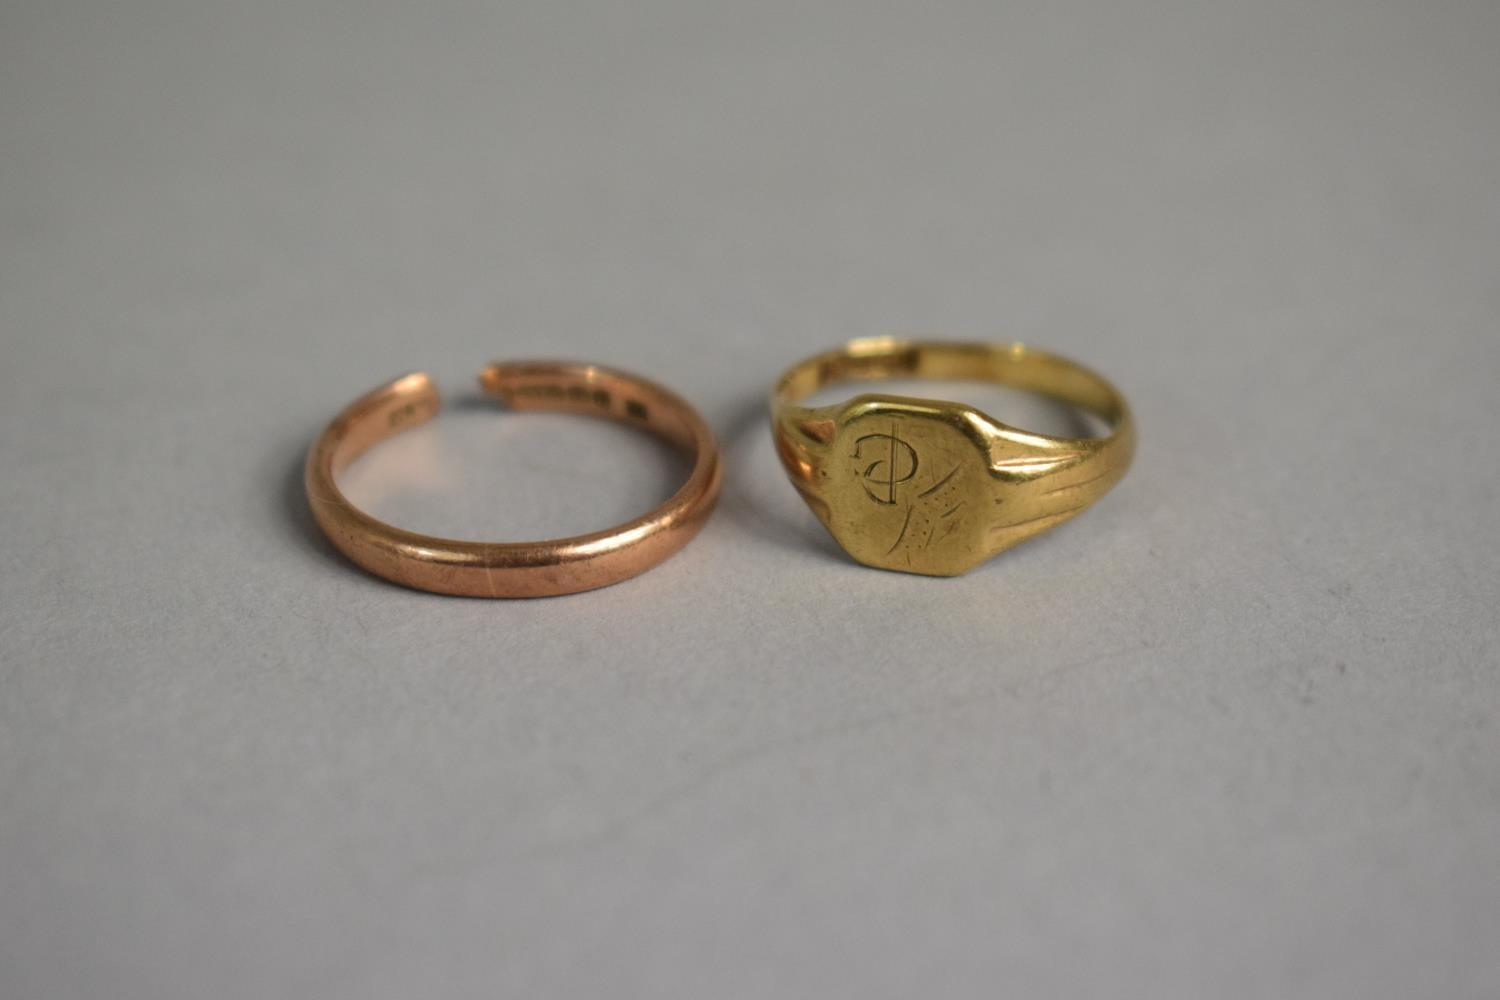 Lot 314 - Two 9ct Gold Rings, One with Damage and the other Bent Out of Shape, 4.4gms Total